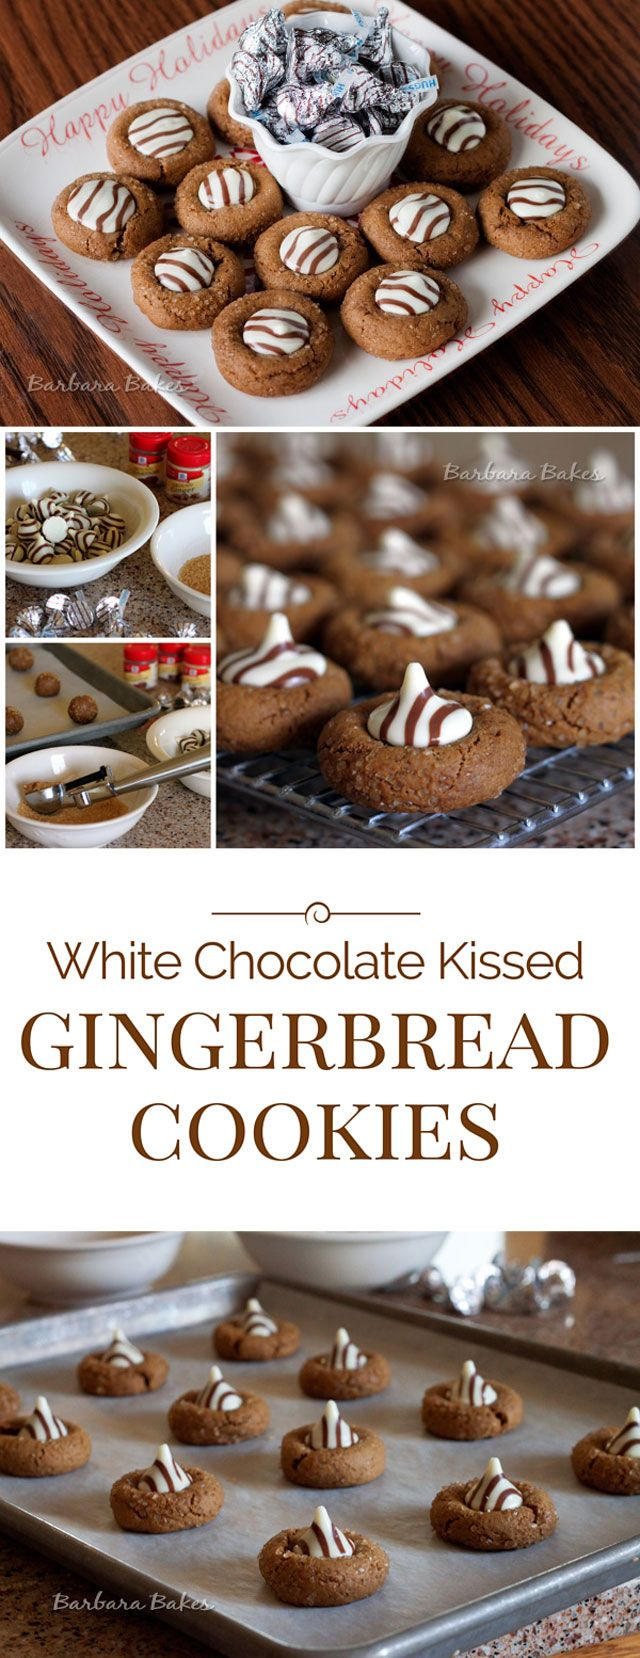 White Chocolate Kissed Gingerbread Cookies - Soft gingerbread cookies dressed up with white chocolate Kisses with milk chocolate swirls.